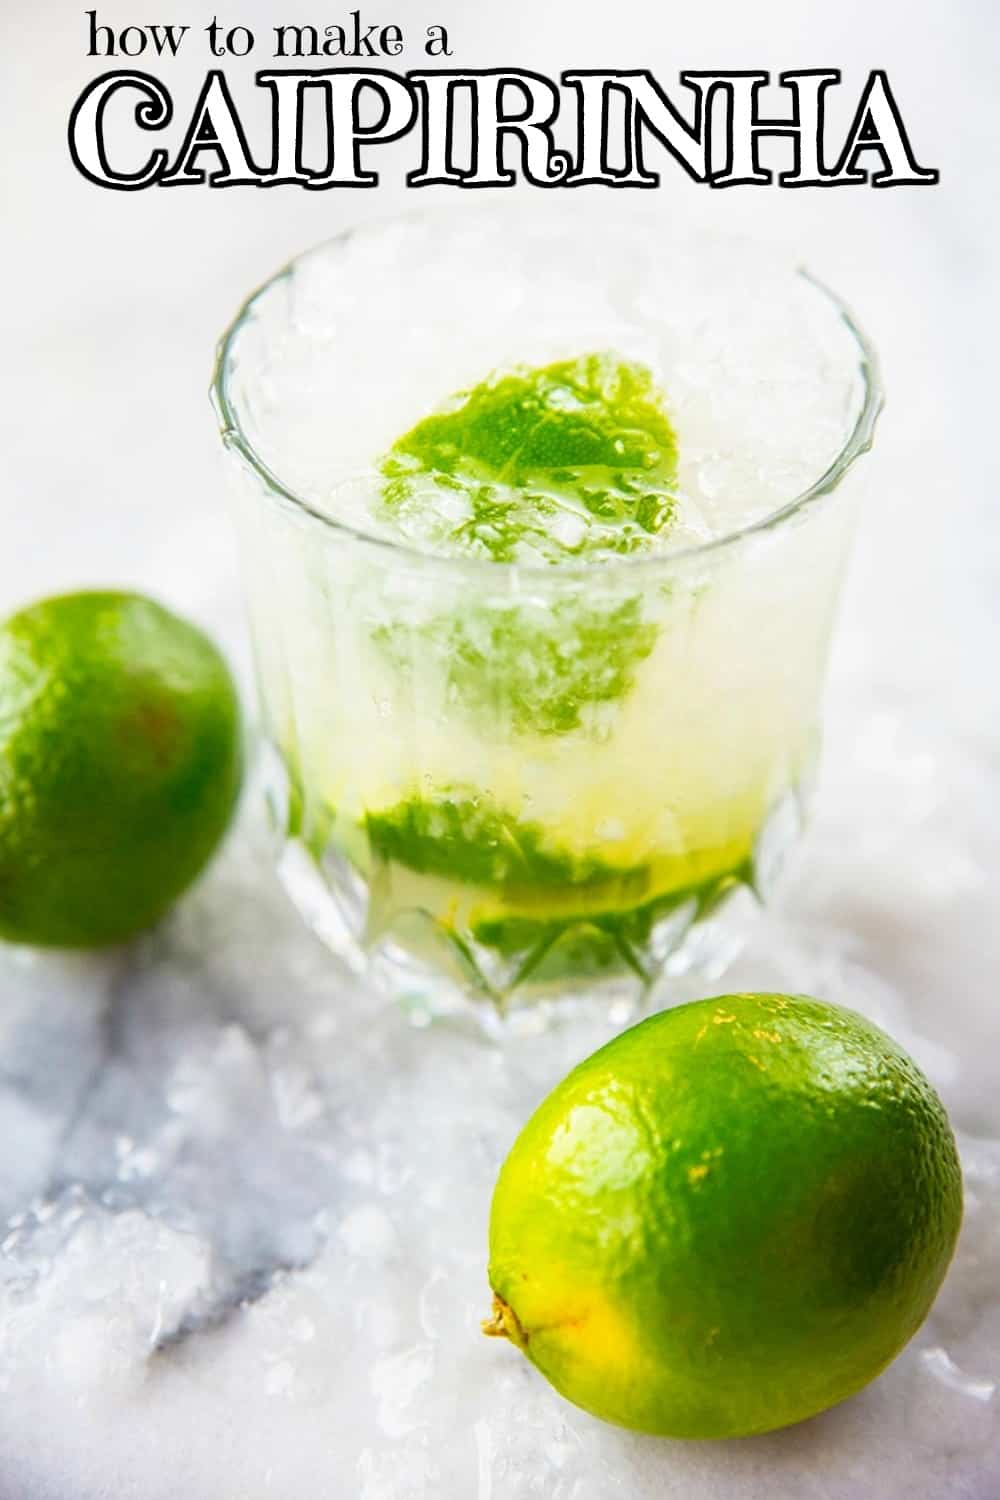 How To Make A Caipirinha The Kitchen Magpie